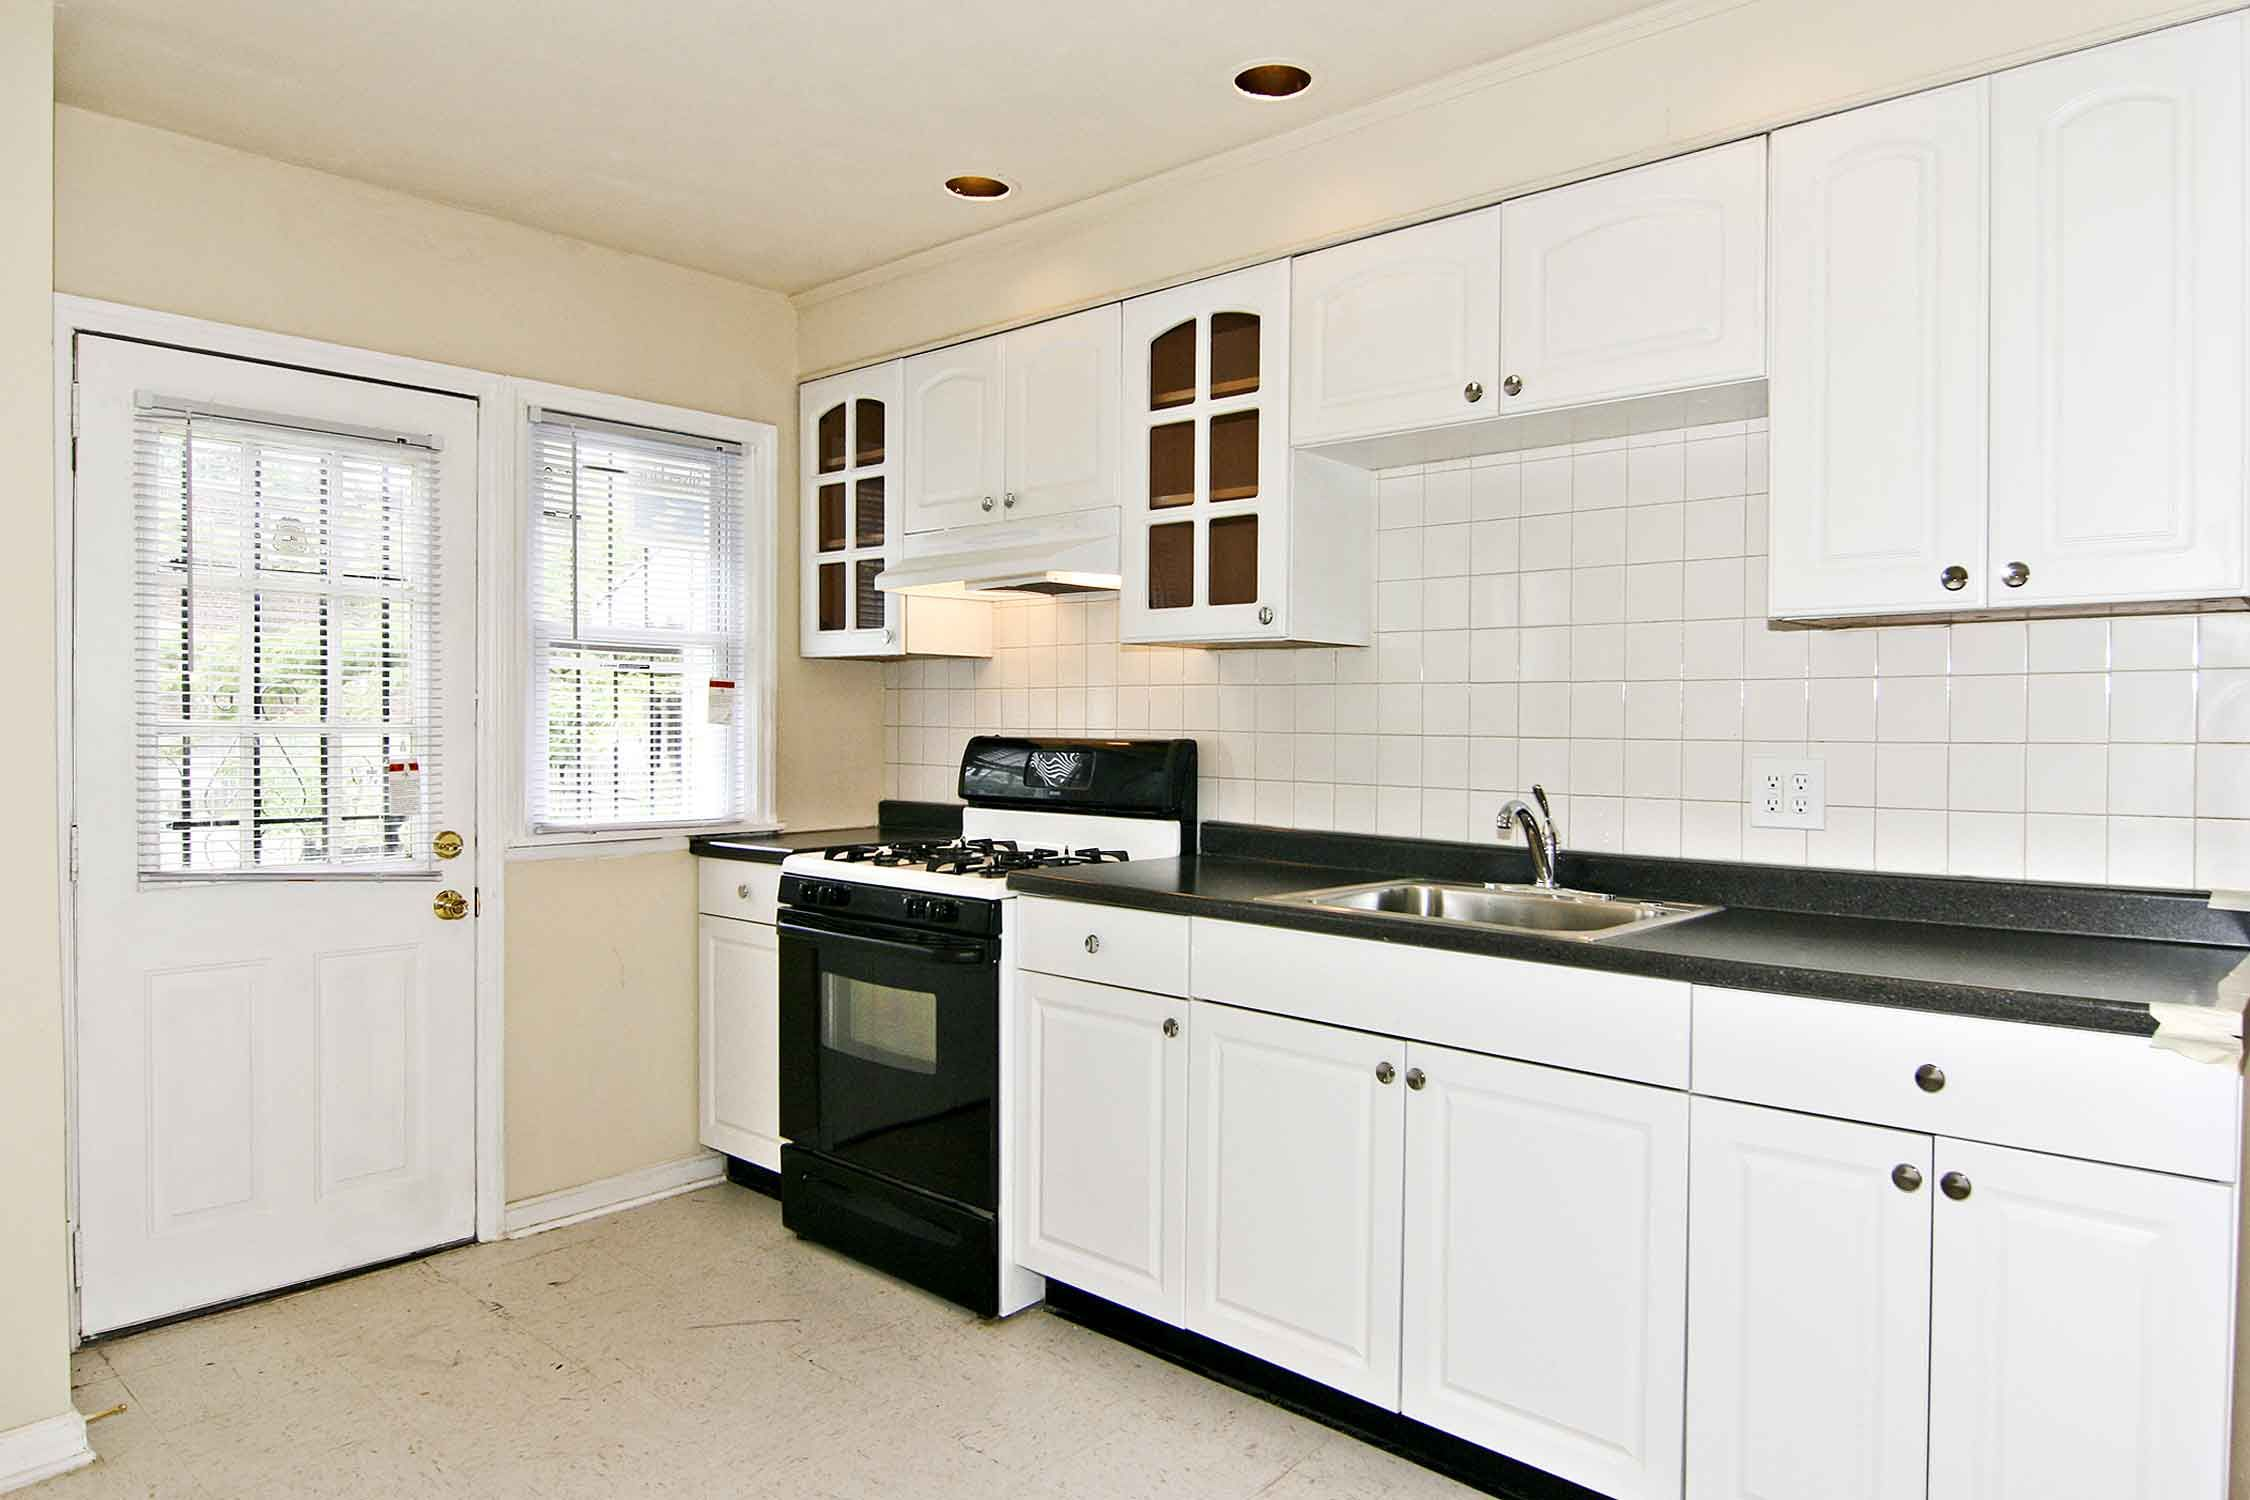 Kitchen Layout With Awesome Minimalist Remodeling Interior White Plywood Cabinets System Combine Black Gl Tile Countertop And